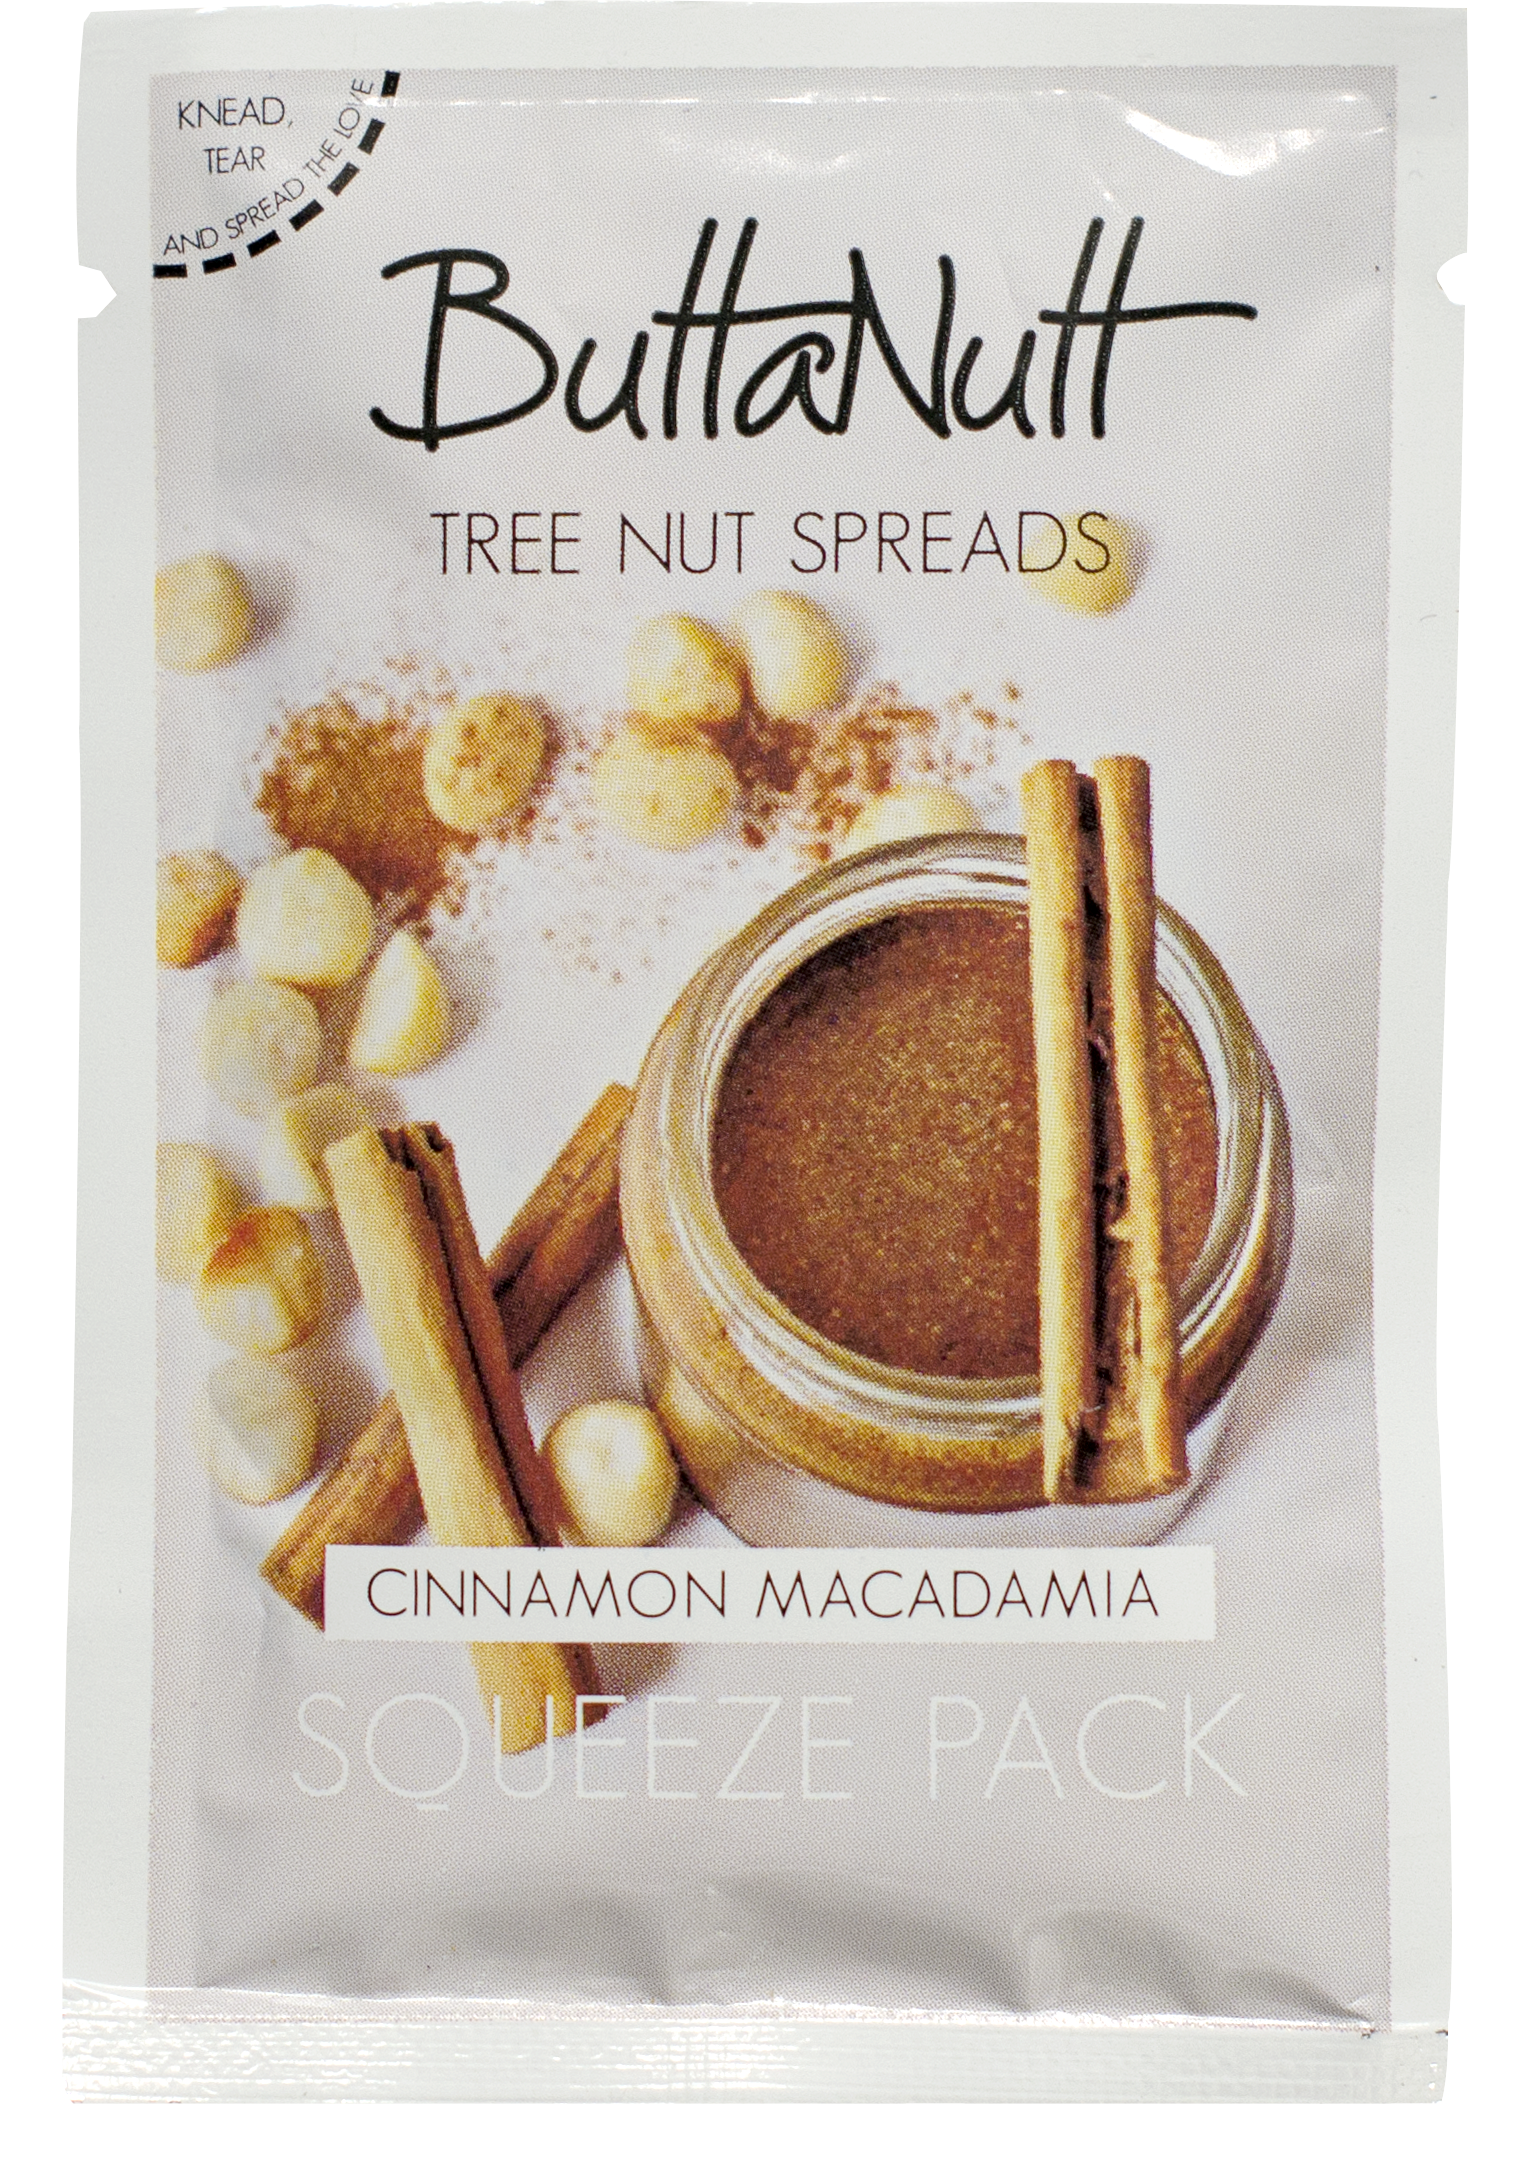 Macadamia squeeze pack g. Cinnamon png picture black and white download